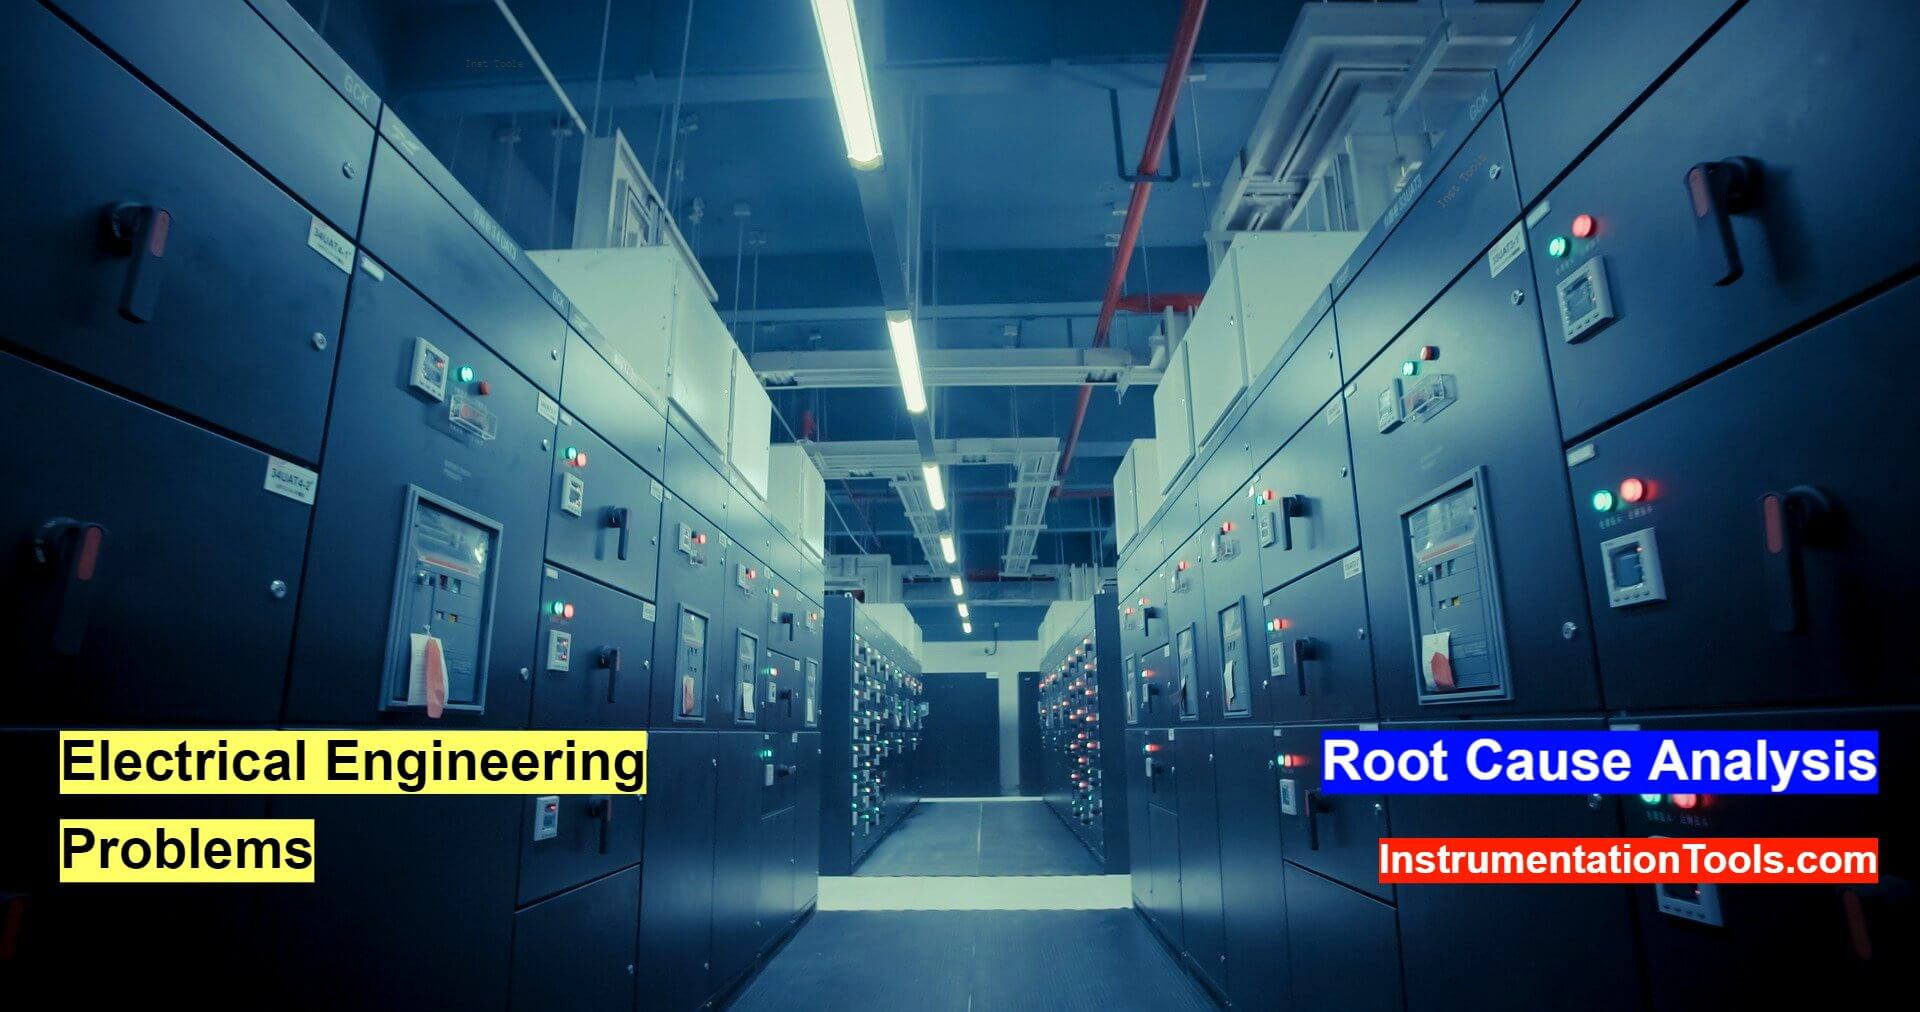 Electrical Engineering Problems - Root Cause Analysis